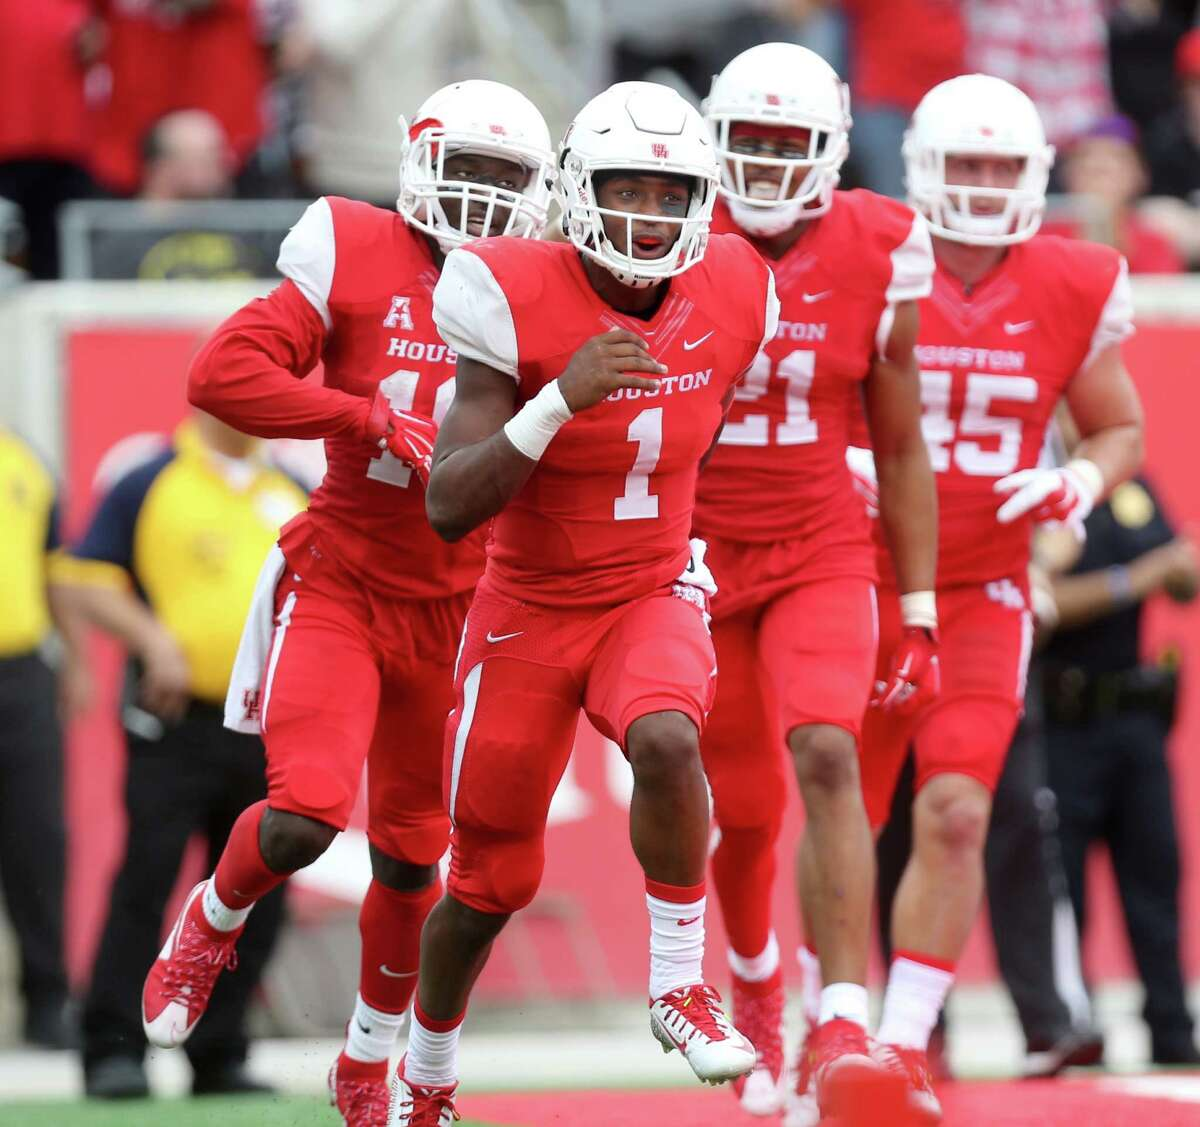 Houston Cougars quarterback Greg Ward Jr. (1) is congratulated by Houston Cougars teammates after scoring a second quarter touchdown against the Navy Midshipmen a NCAA college football game at TDECU Stadium Friday, Nov. 27, 2015, in Houston, Texas.